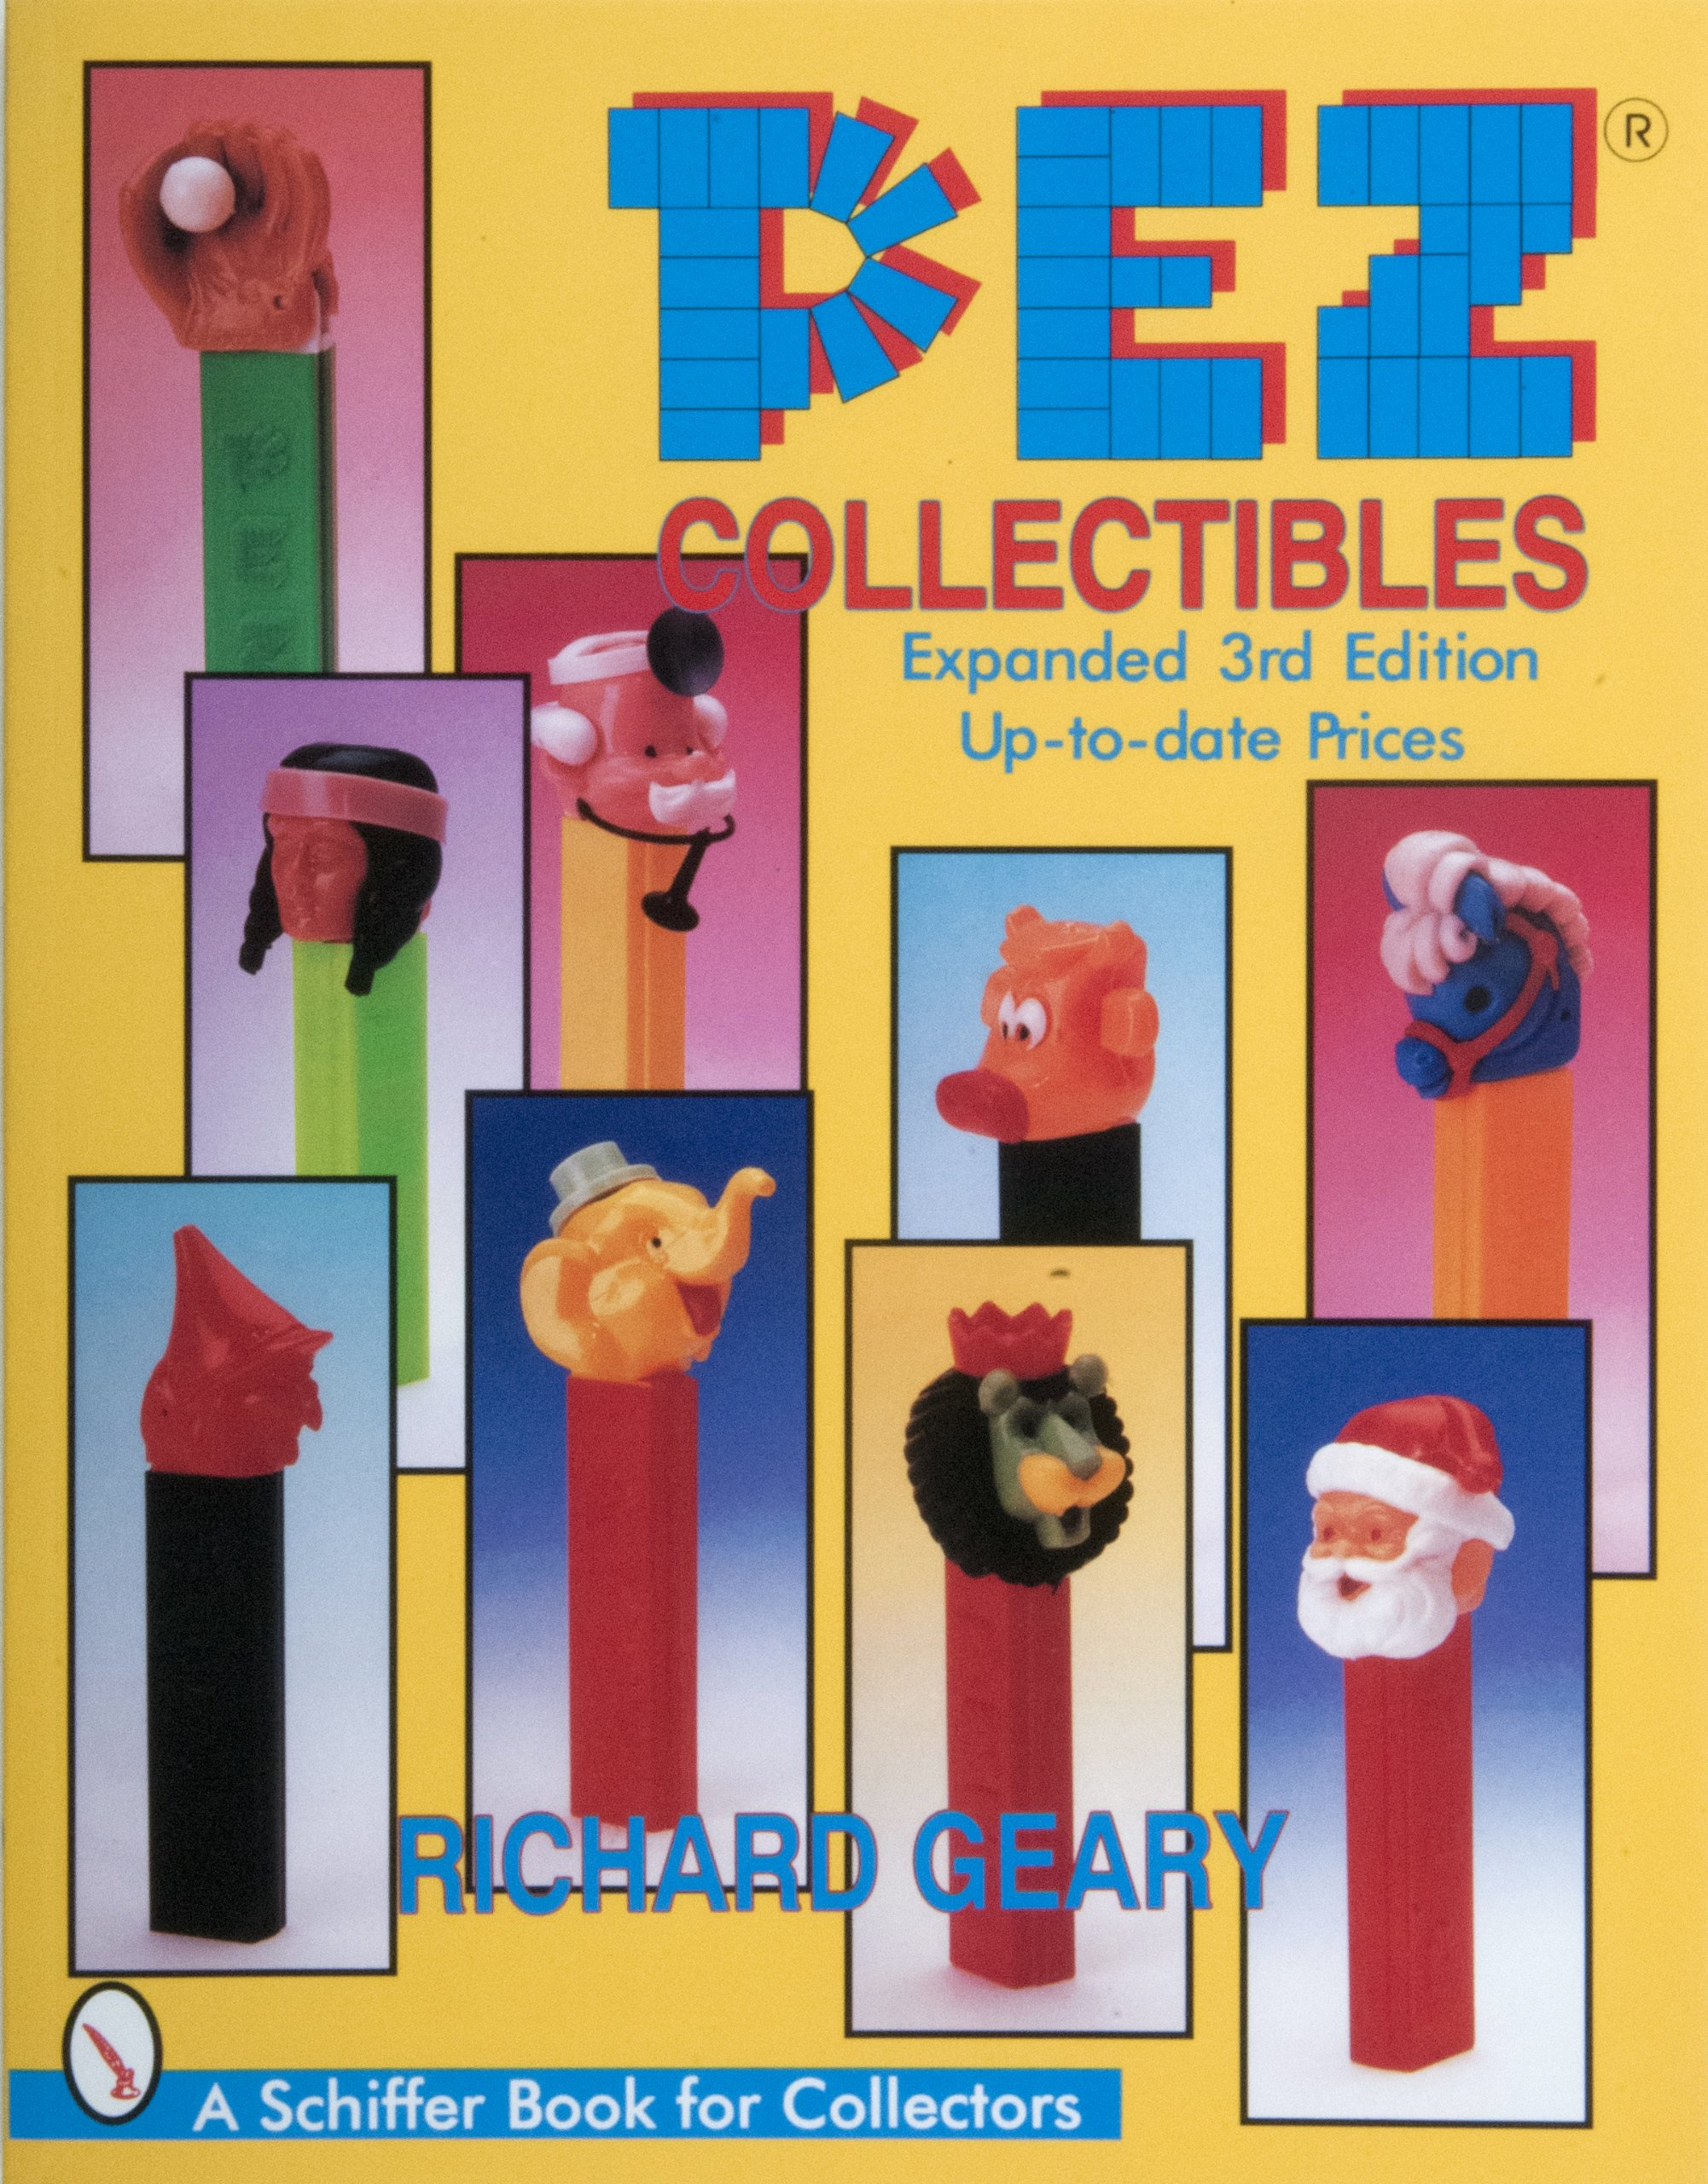 Pez Collectibles (Schiffer Book for Collectors): Richard Geary:  9780764307133: Amazon.com: Books